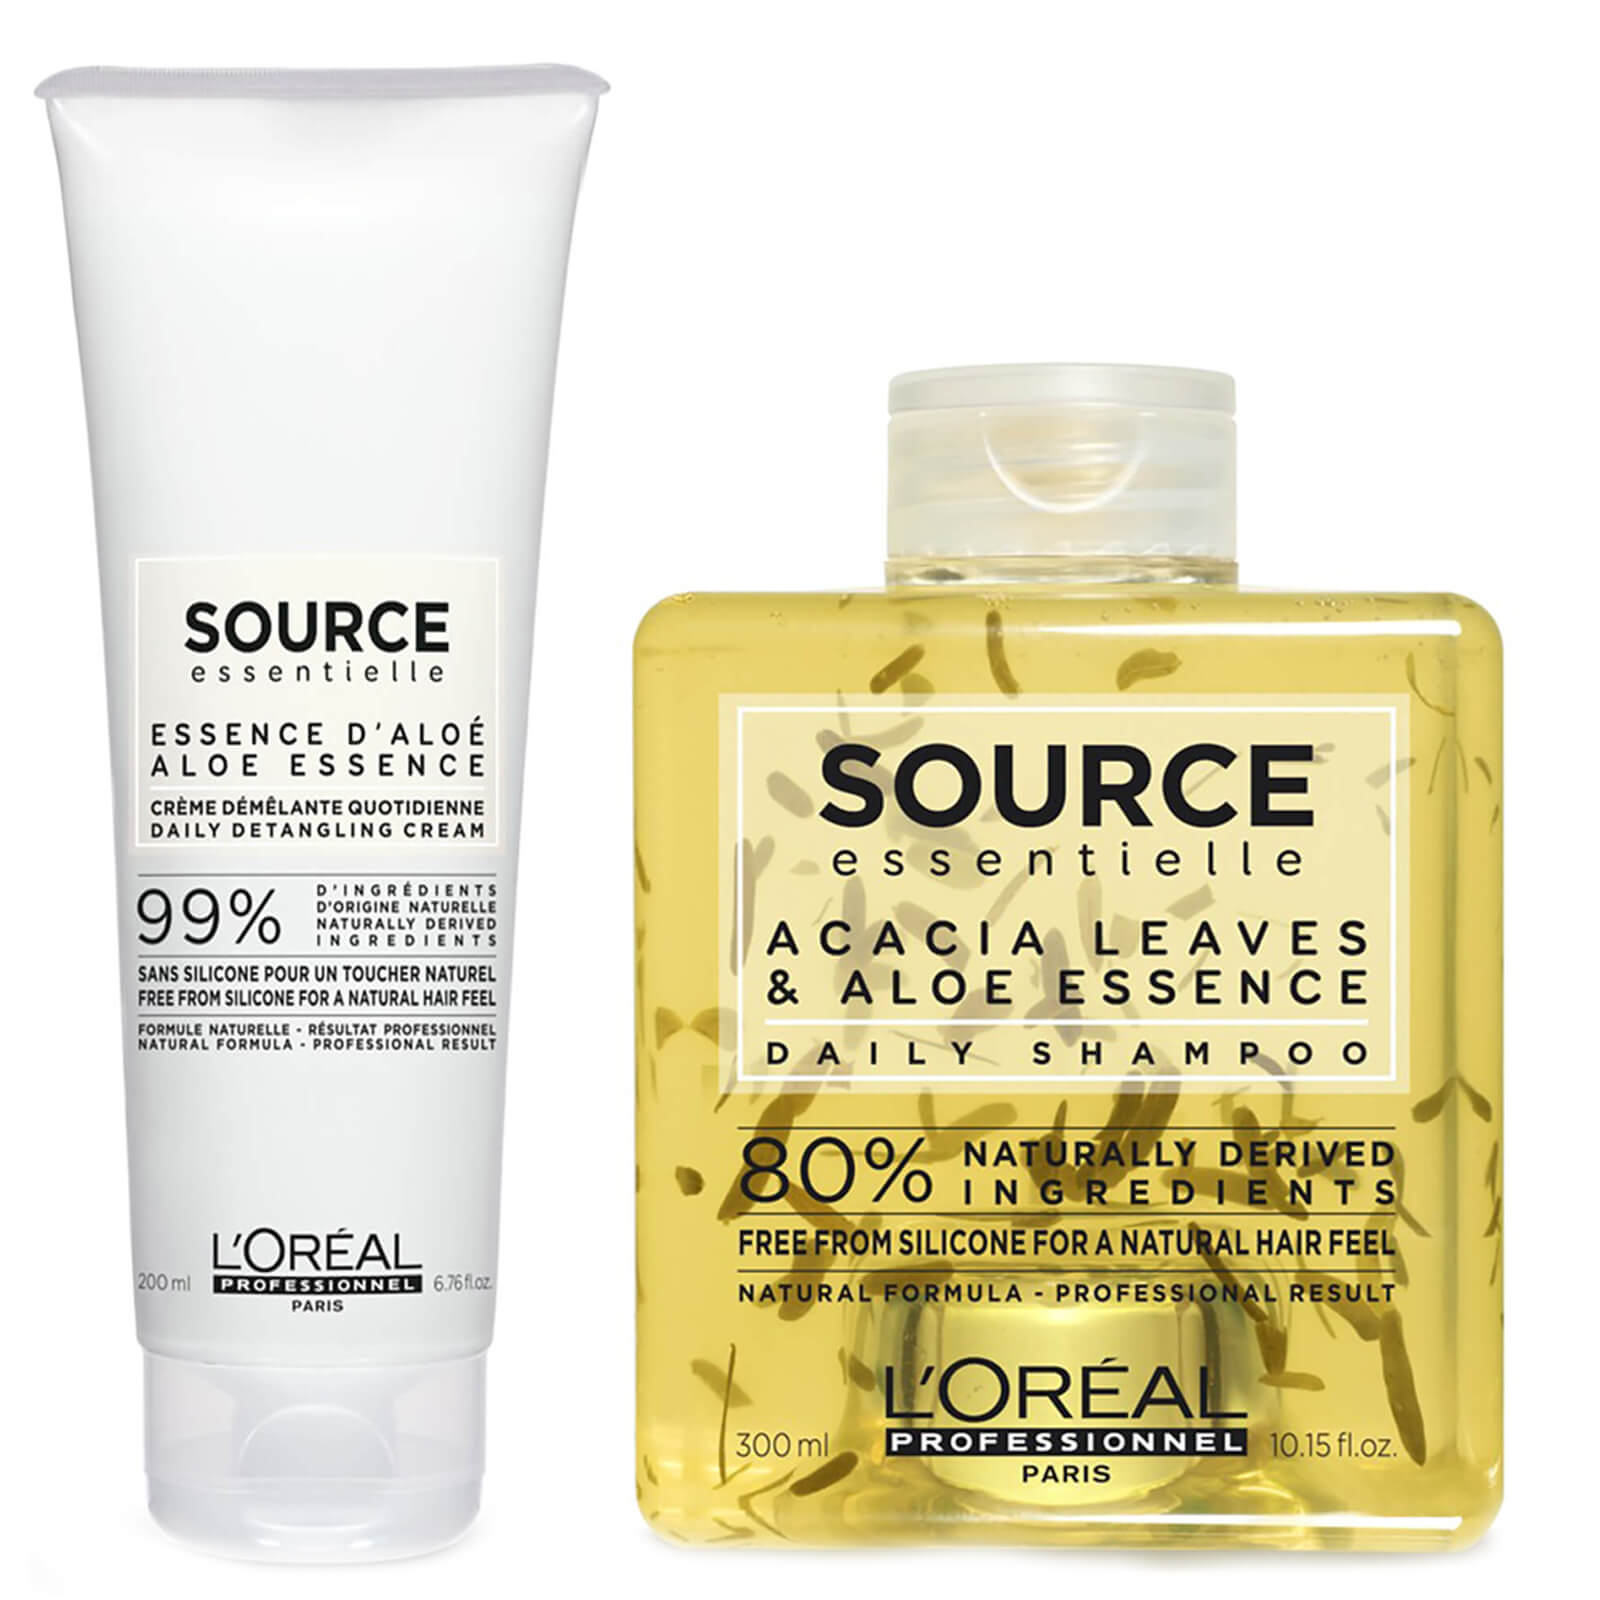 L'Oréal Professionnel Source Essentielle Daily Shampoo and Detangling Hair Cream Duo